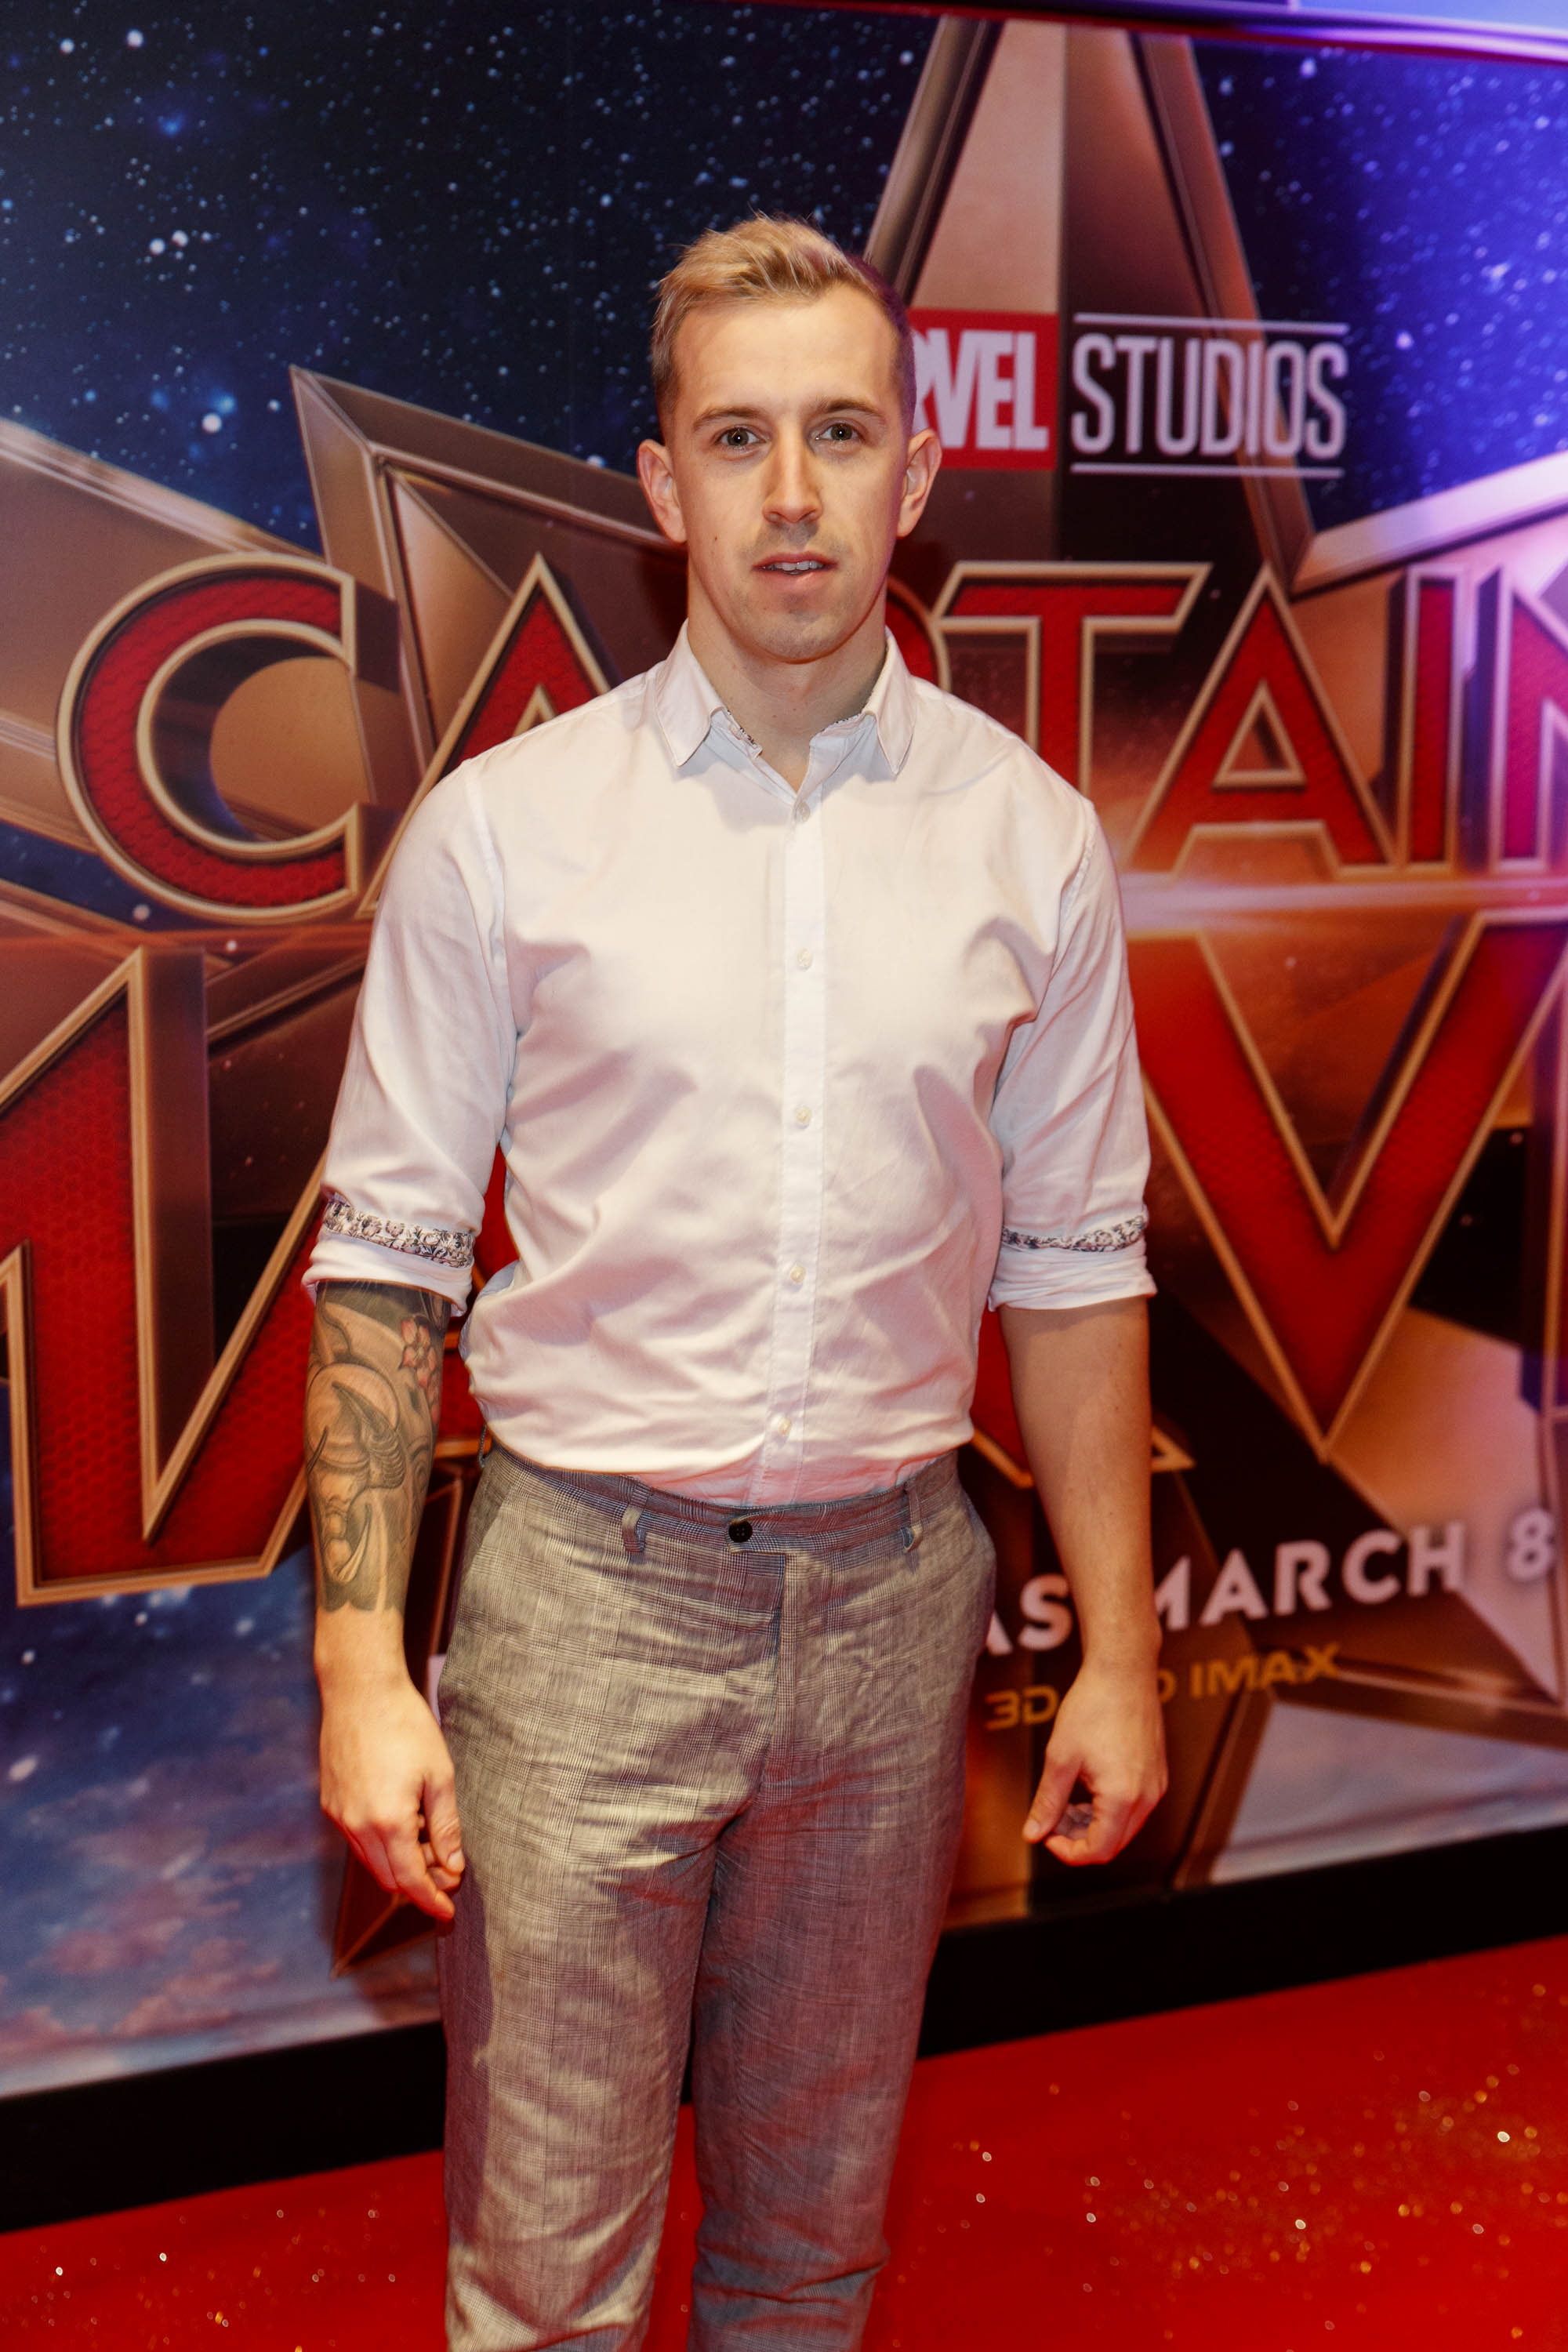 Luke O'Faolain pictured at a special preview screening of CAPTAIN MARVEL in Cineworld Dublin. Picture by: Andres Poveda